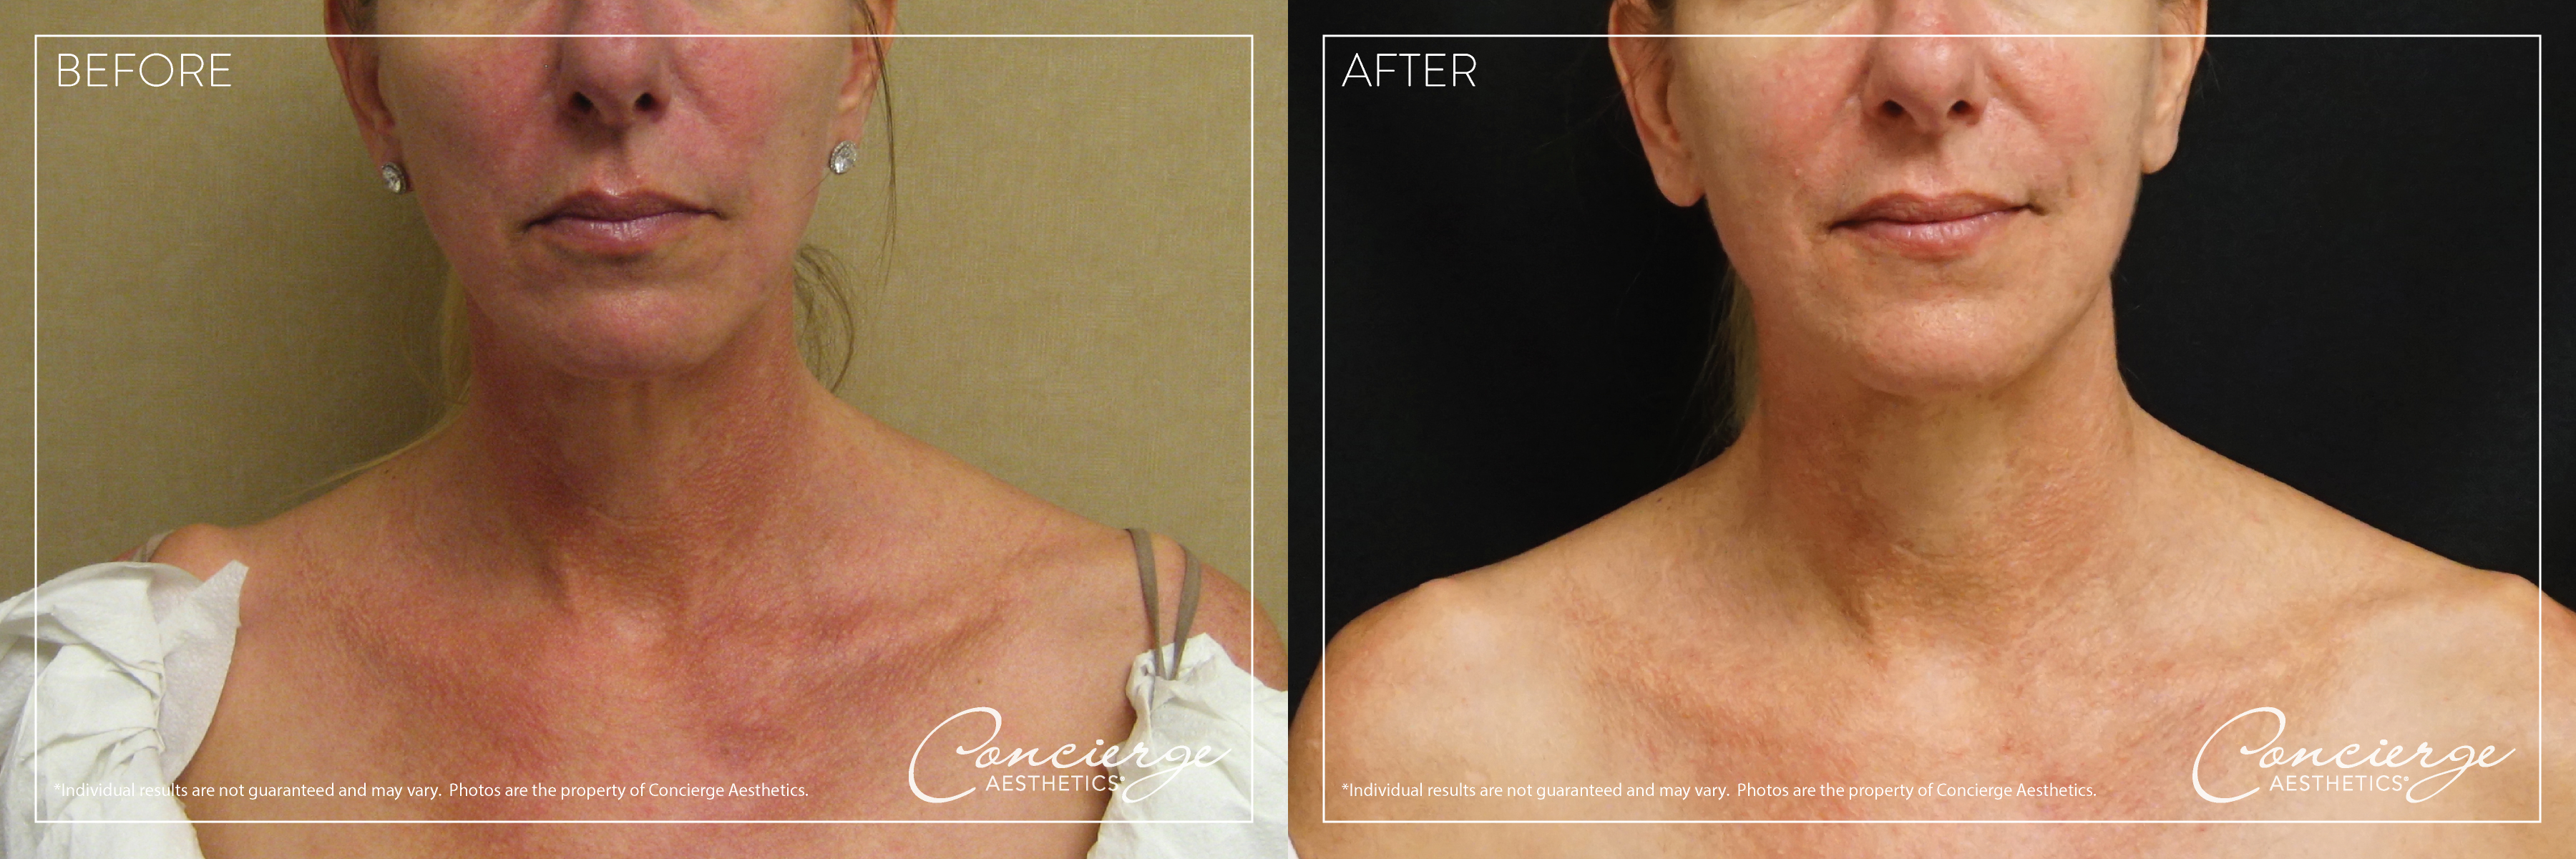 Laser IPL - Photofacial: Treat Sun Damage | Concierge Aesthetics, Irvine